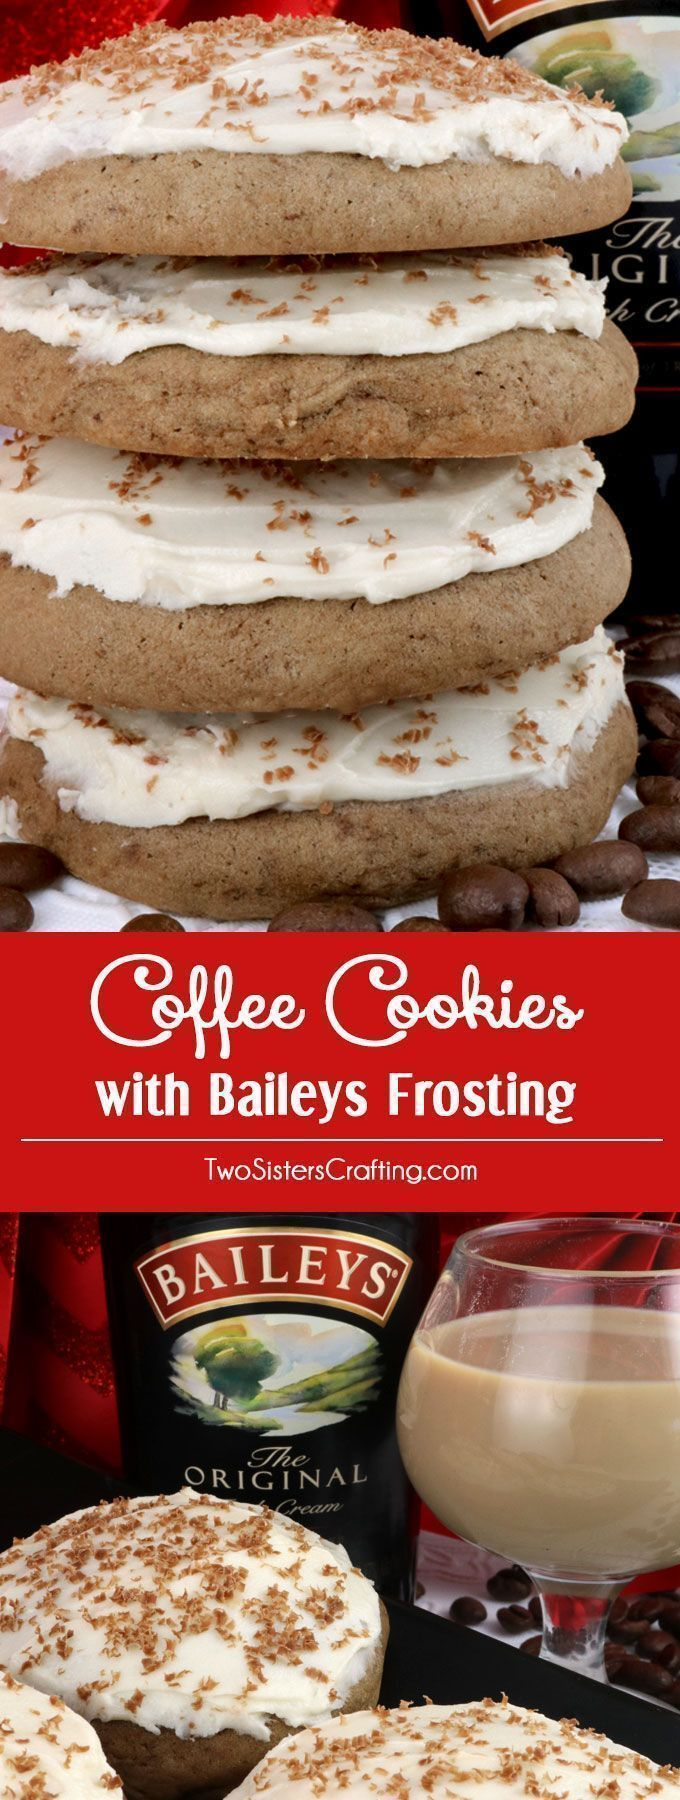 Coffee Cookies with Baileys Frosting - delicious cakey cookies infused with just a hint of coffee and topped with our creamy, Baileys Irish Cream frosting. This Christmas Cookie recipe would be a great Christmas Dessert or Treat, Cookie Exchange recipe or just as a special treat for that coffee-lover in your family. #dessertfoodrecipes #christmashints